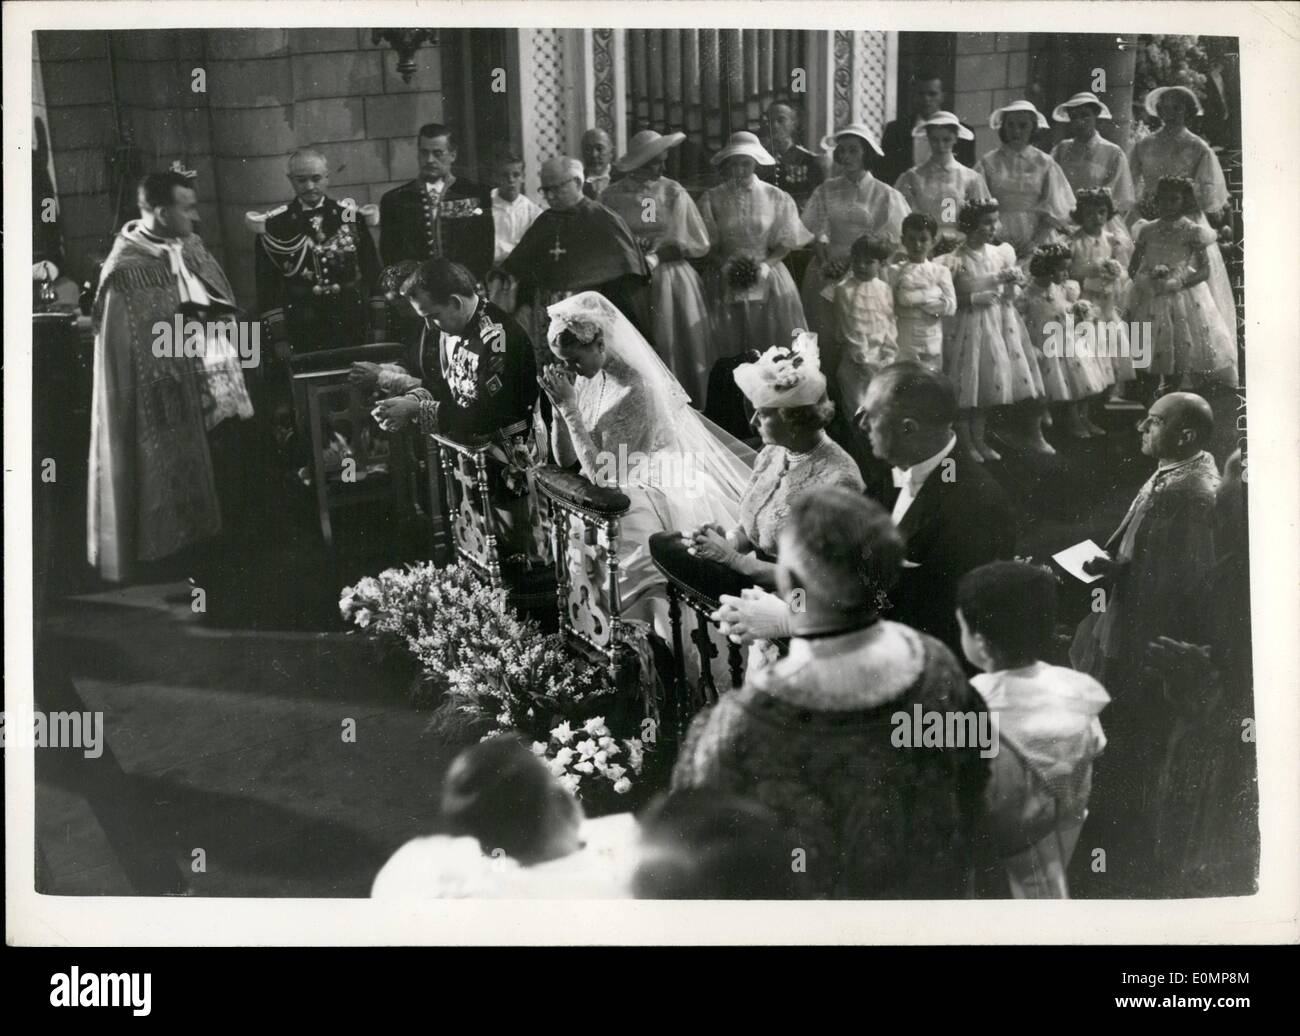 Apr. 04, 1956 - Prince Rainer weds Grace Kelly......The Bride and Bridegroom Pray. Photo Shows Prince Rainier and Grace Kelly pray - during the wedding ceremony in Monaco cathedral this morning. The bridesmaids and guests can be seen surrounding them. - Stock Image